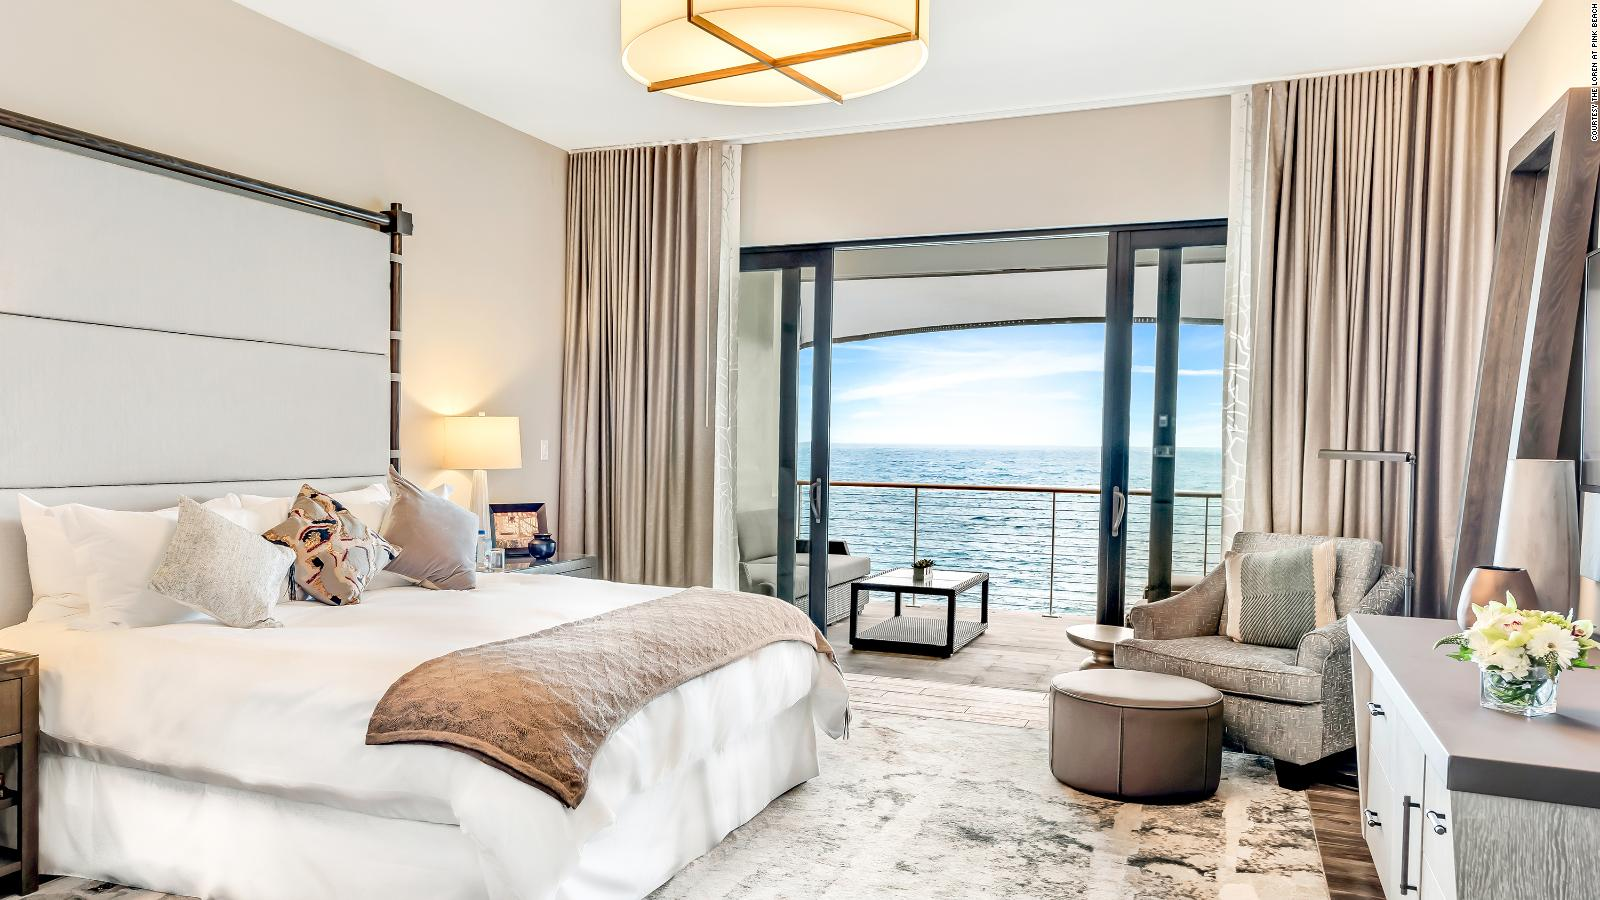 Score A Great Hotel Room With These Ideas